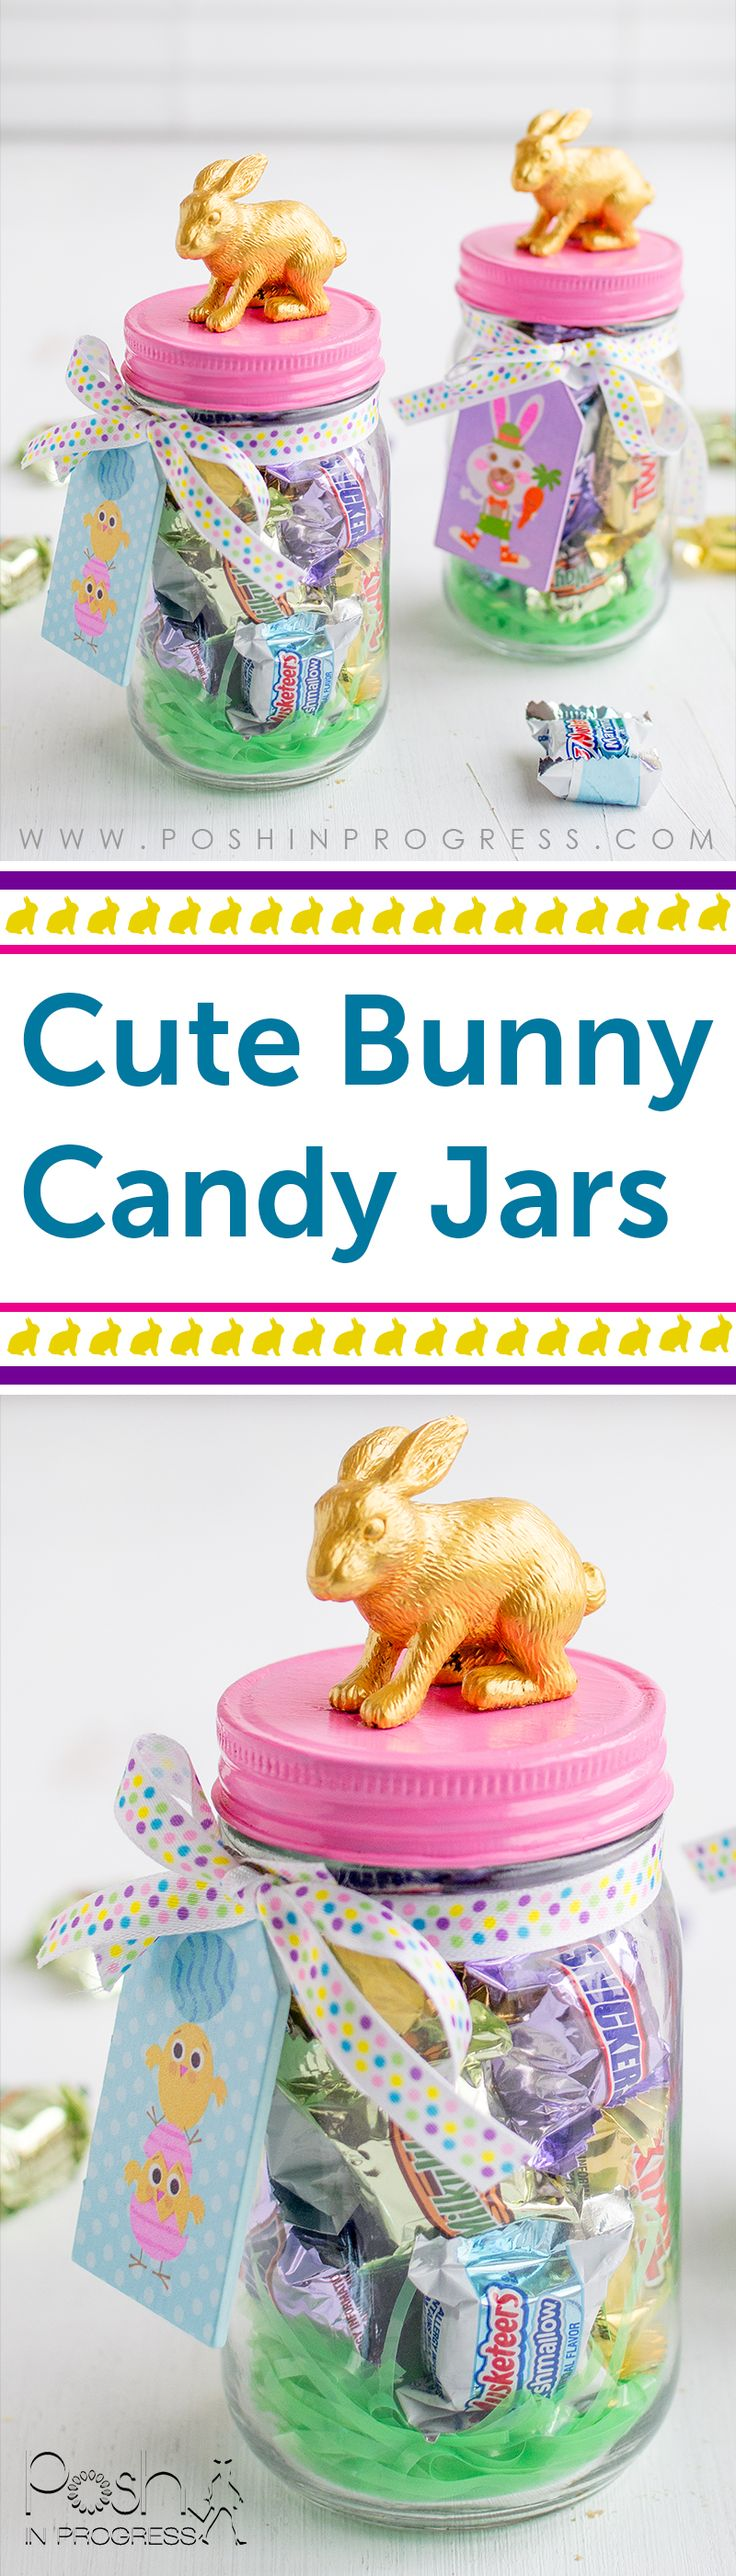 Need adorable but quick DIY Easter decor? You should make this simple bunny cand...